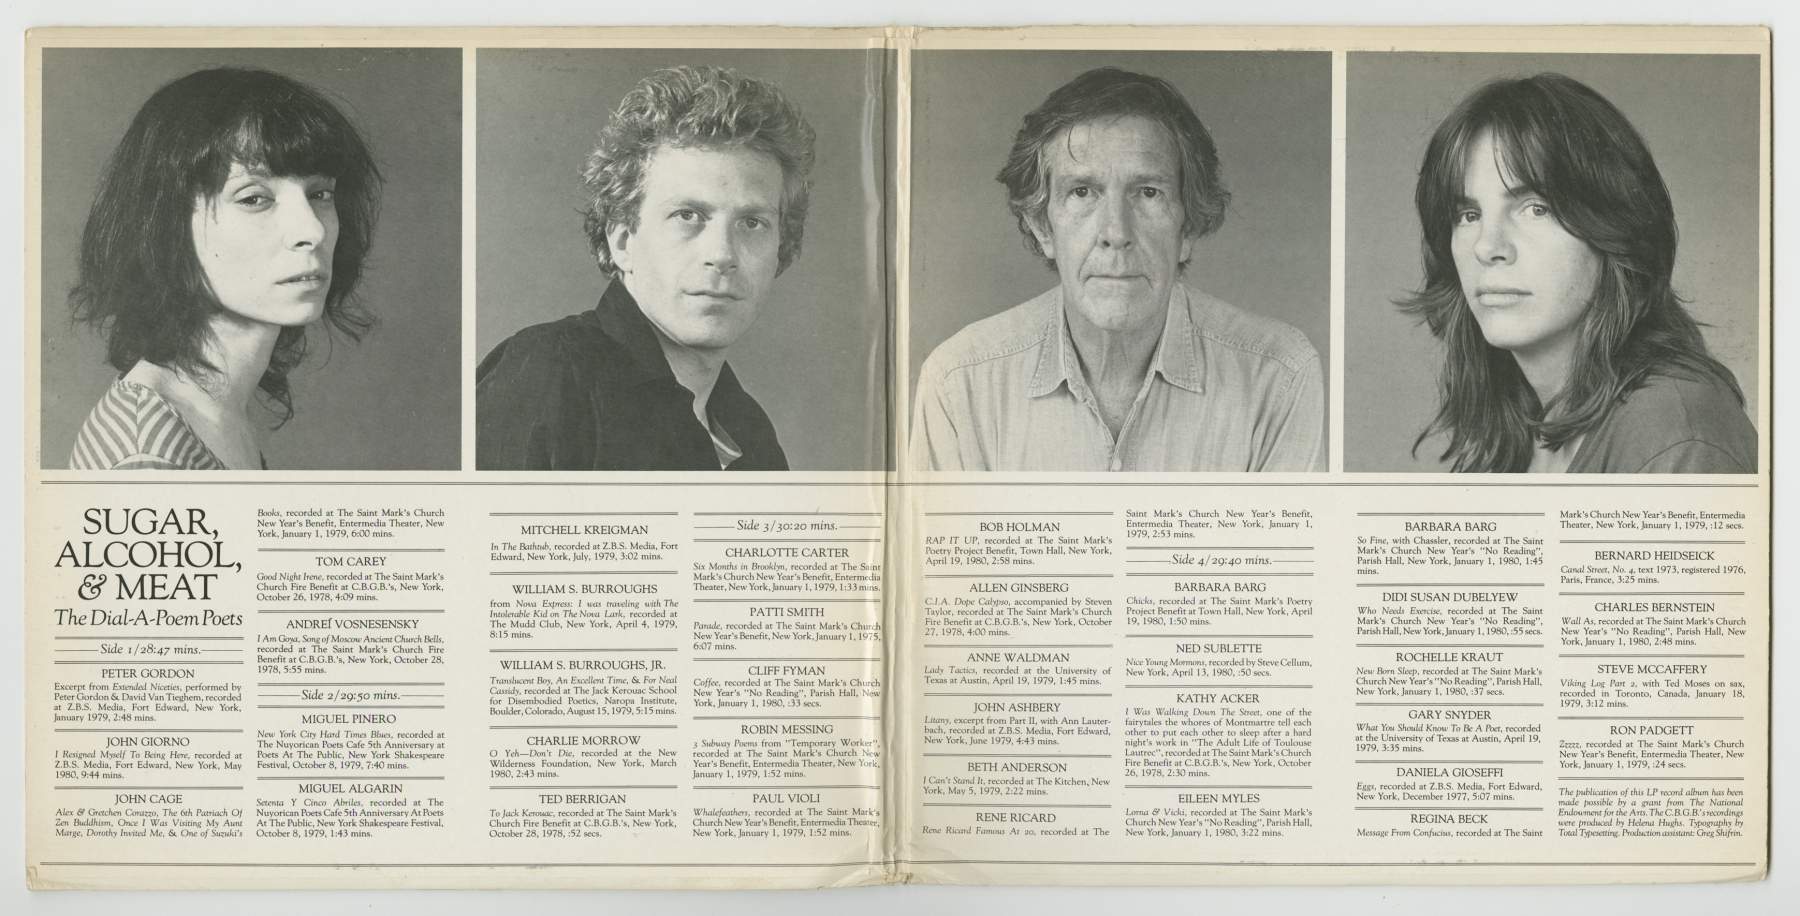 The Dial-A-Poem Poets: Sugar, Alcohol, & Meat (1980)